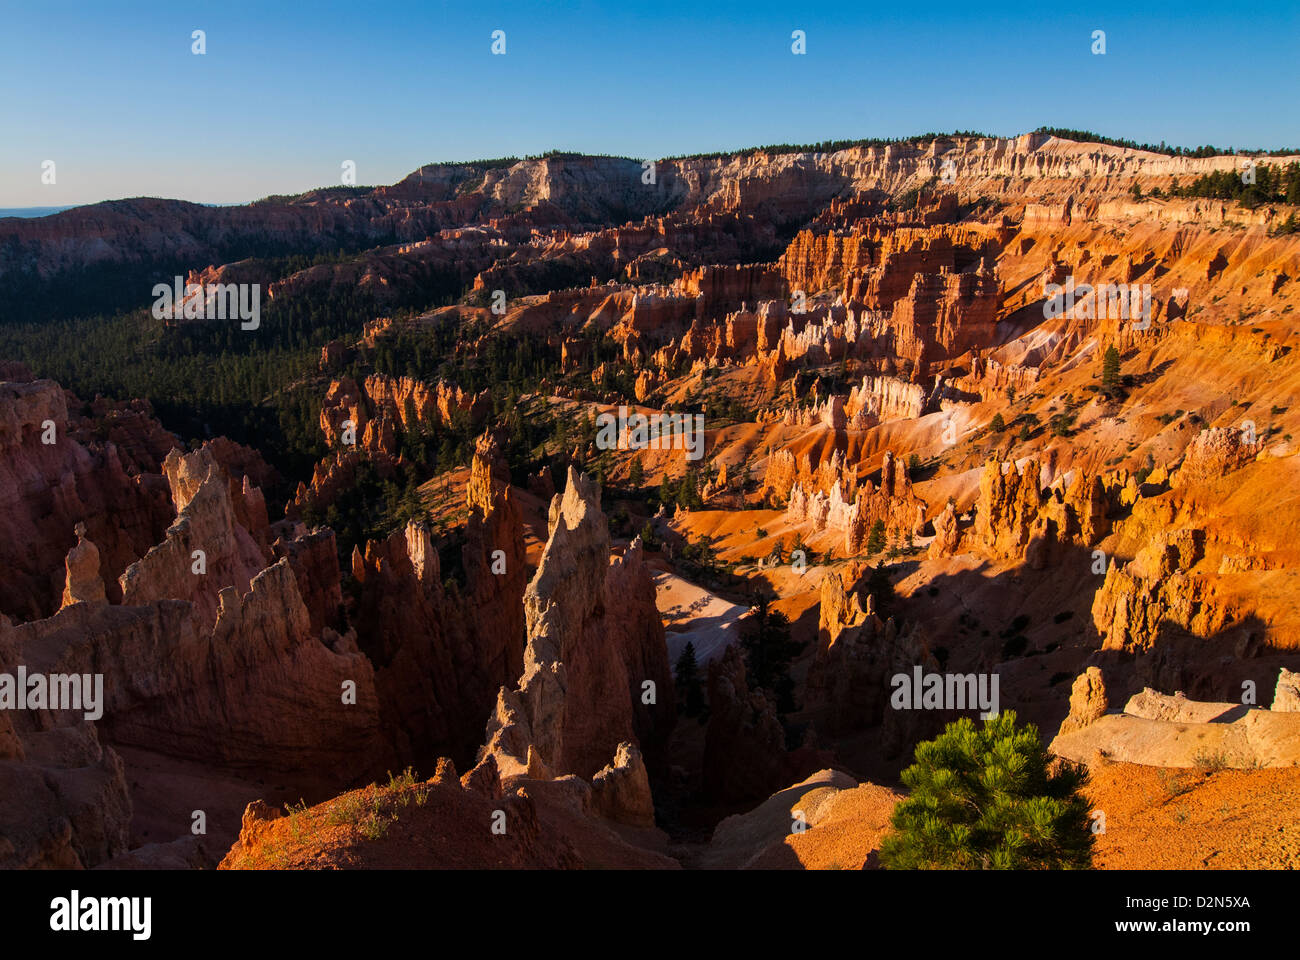 View over the pinnacles in the beautiful rock formations of Bryce Canyon National Park, Utah, USA - Stock Image